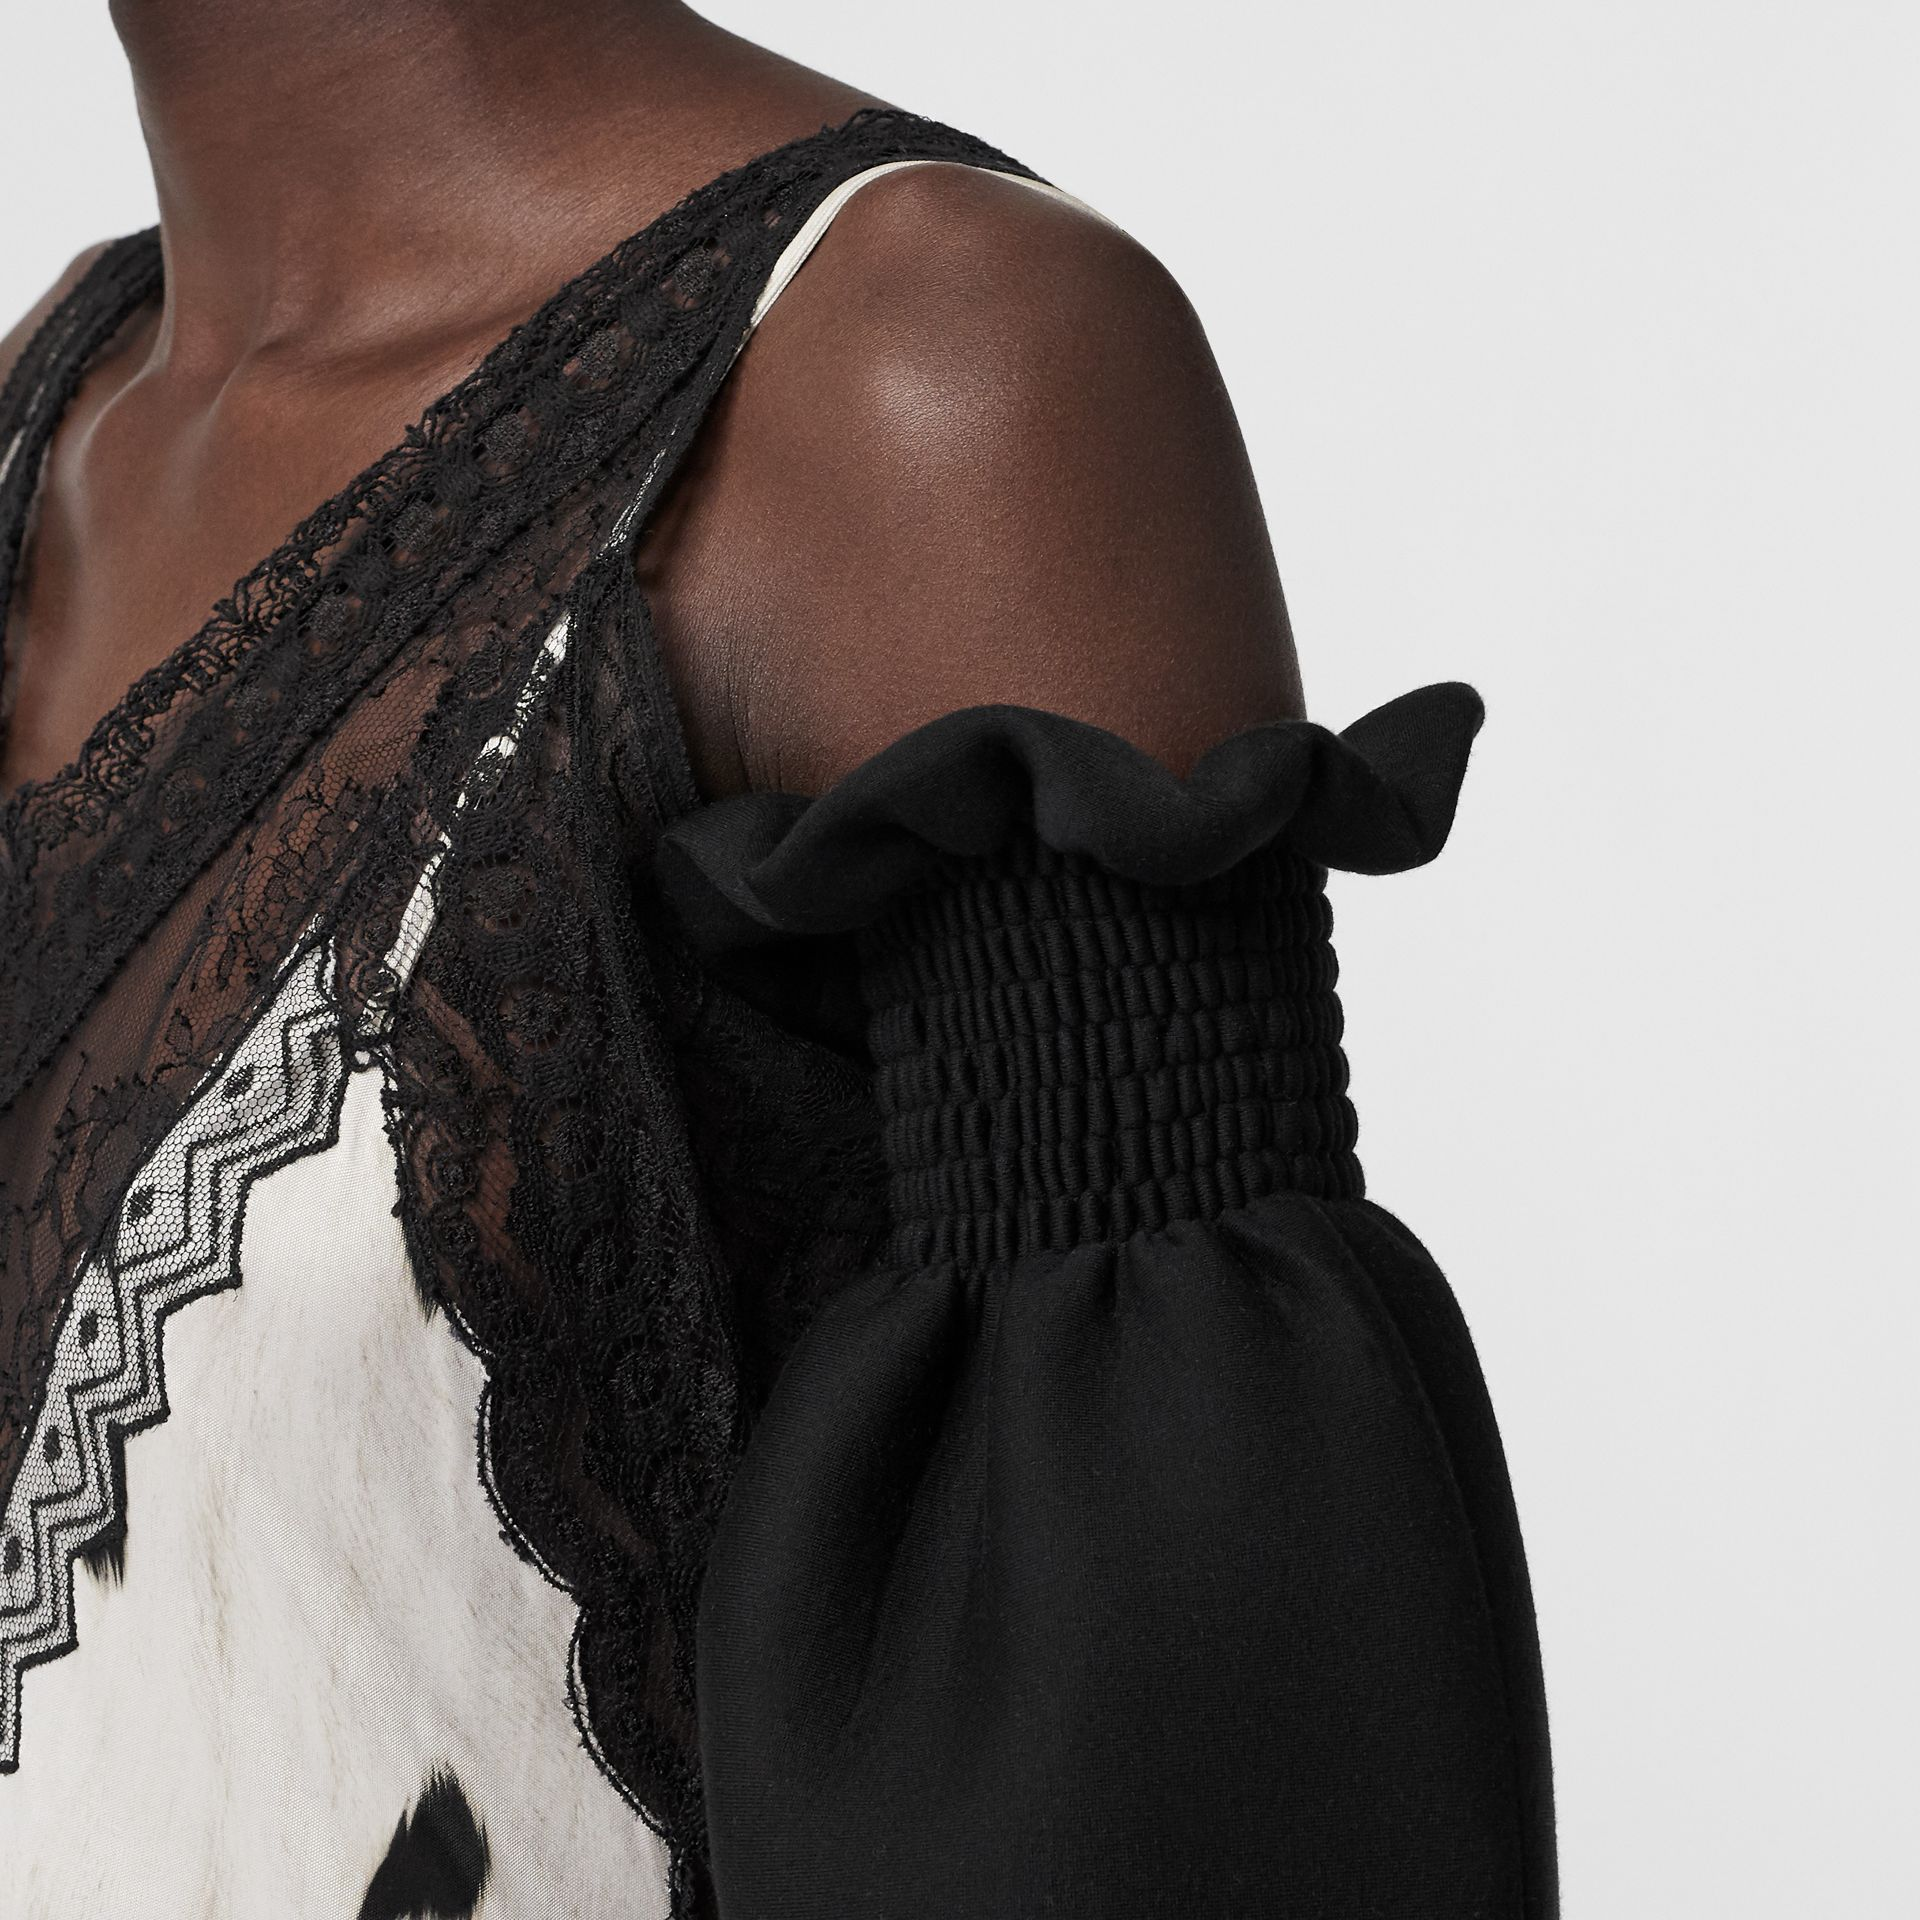 Kingdom Print Neoprene Puff Sleeves in Black - Women | Burberry - gallery image 4